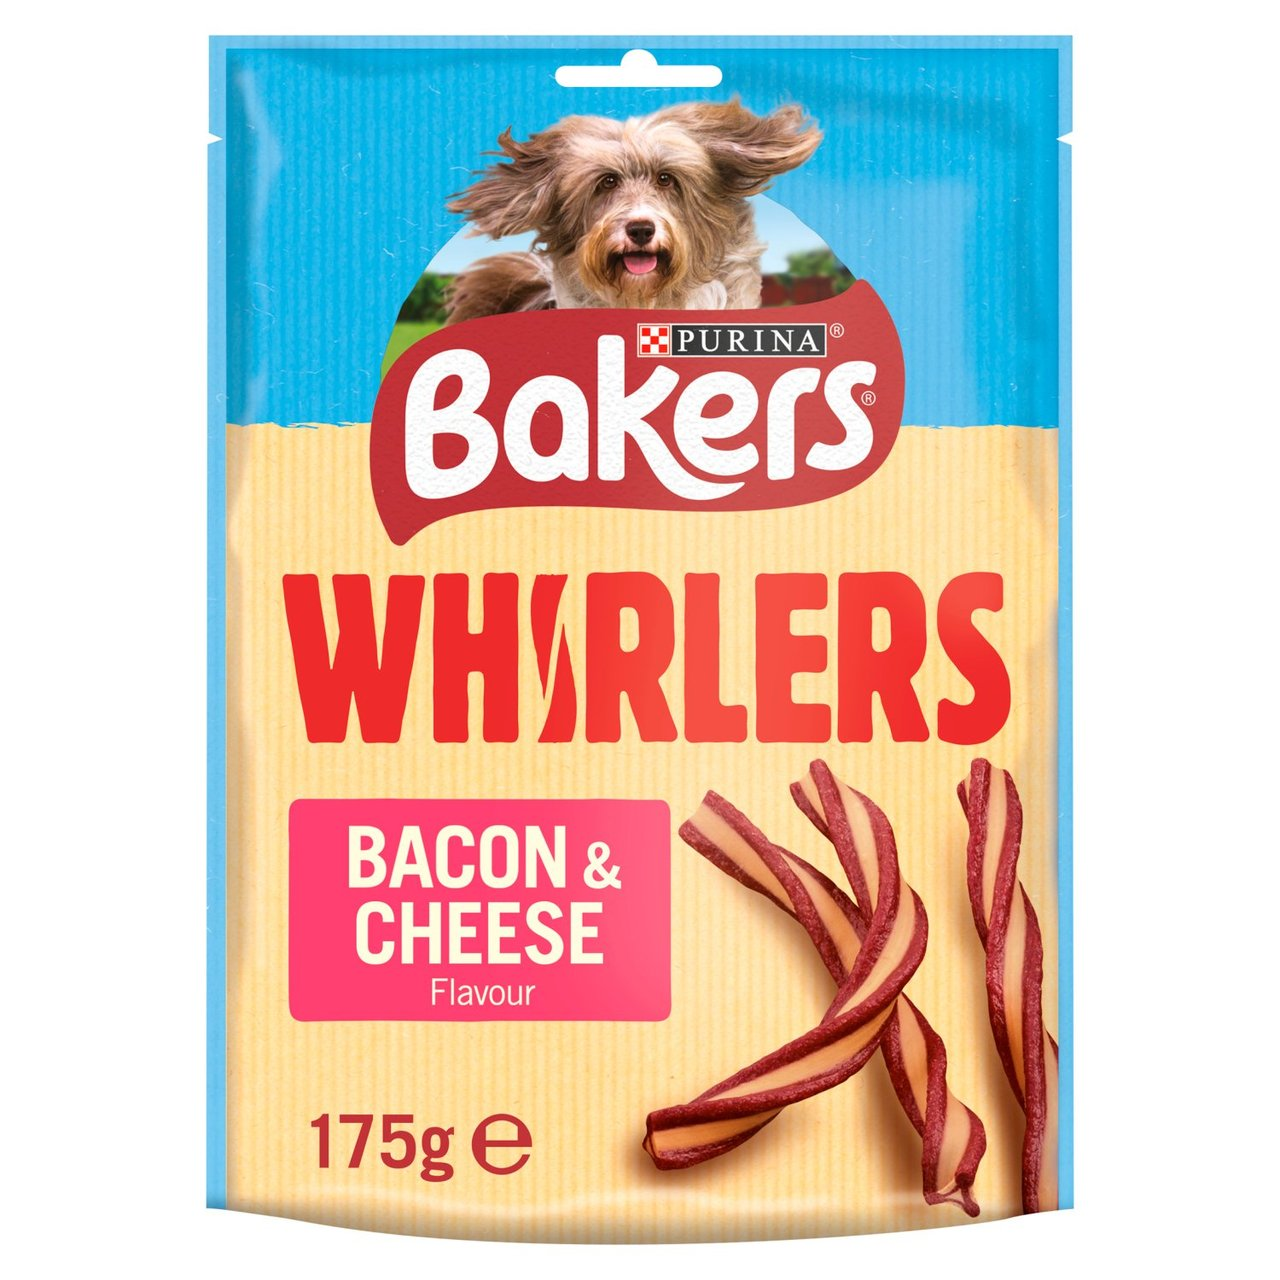 An image of Bakers Dog Treats Bacon & Cheese Whirlers